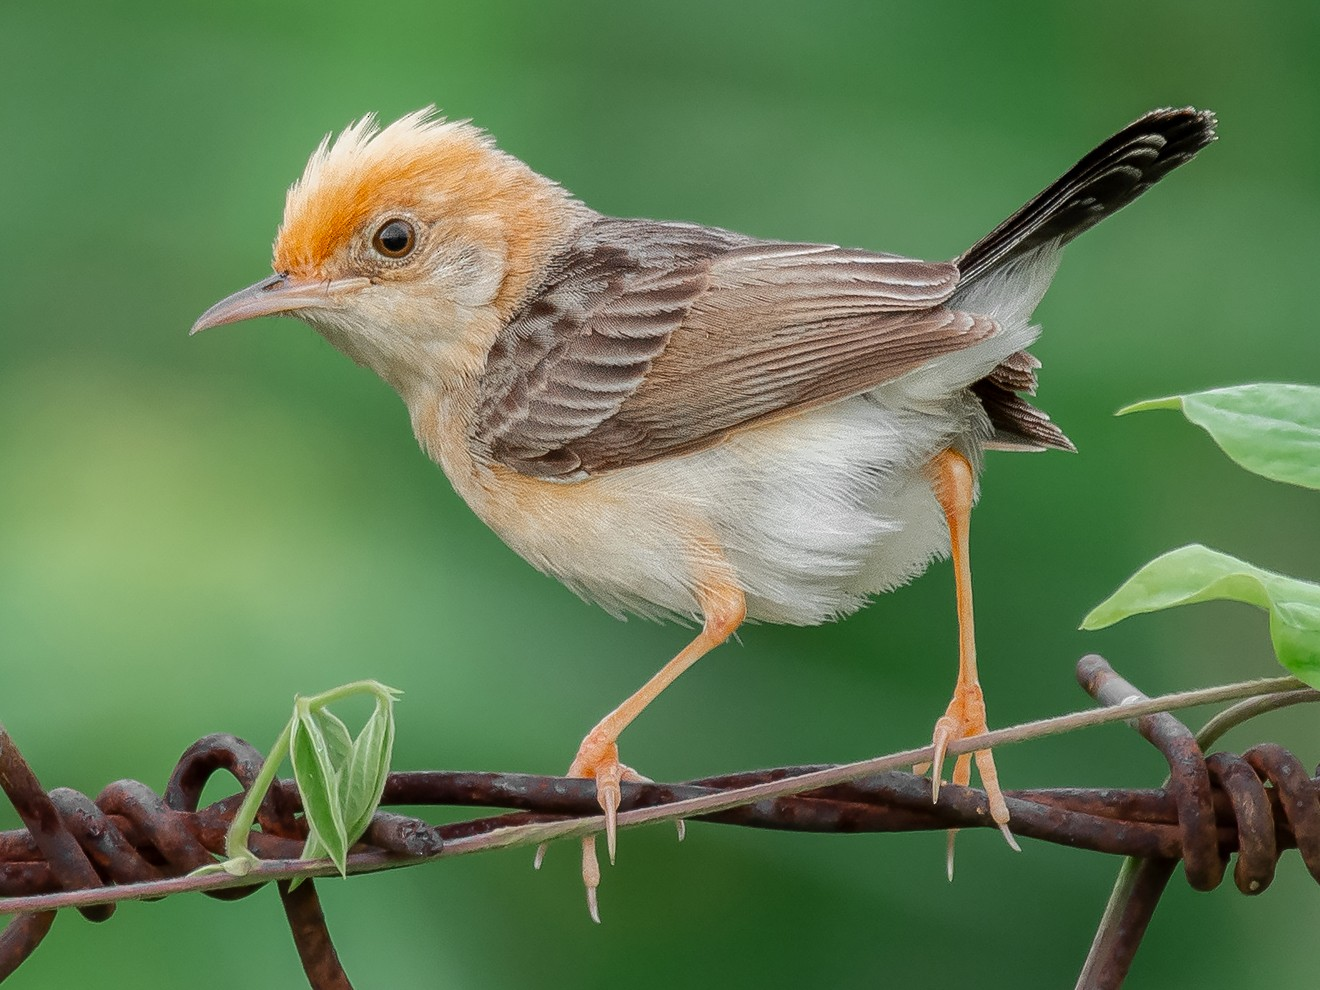 Golden-headed Cisticola - Natthaphat Chotjuckdikul